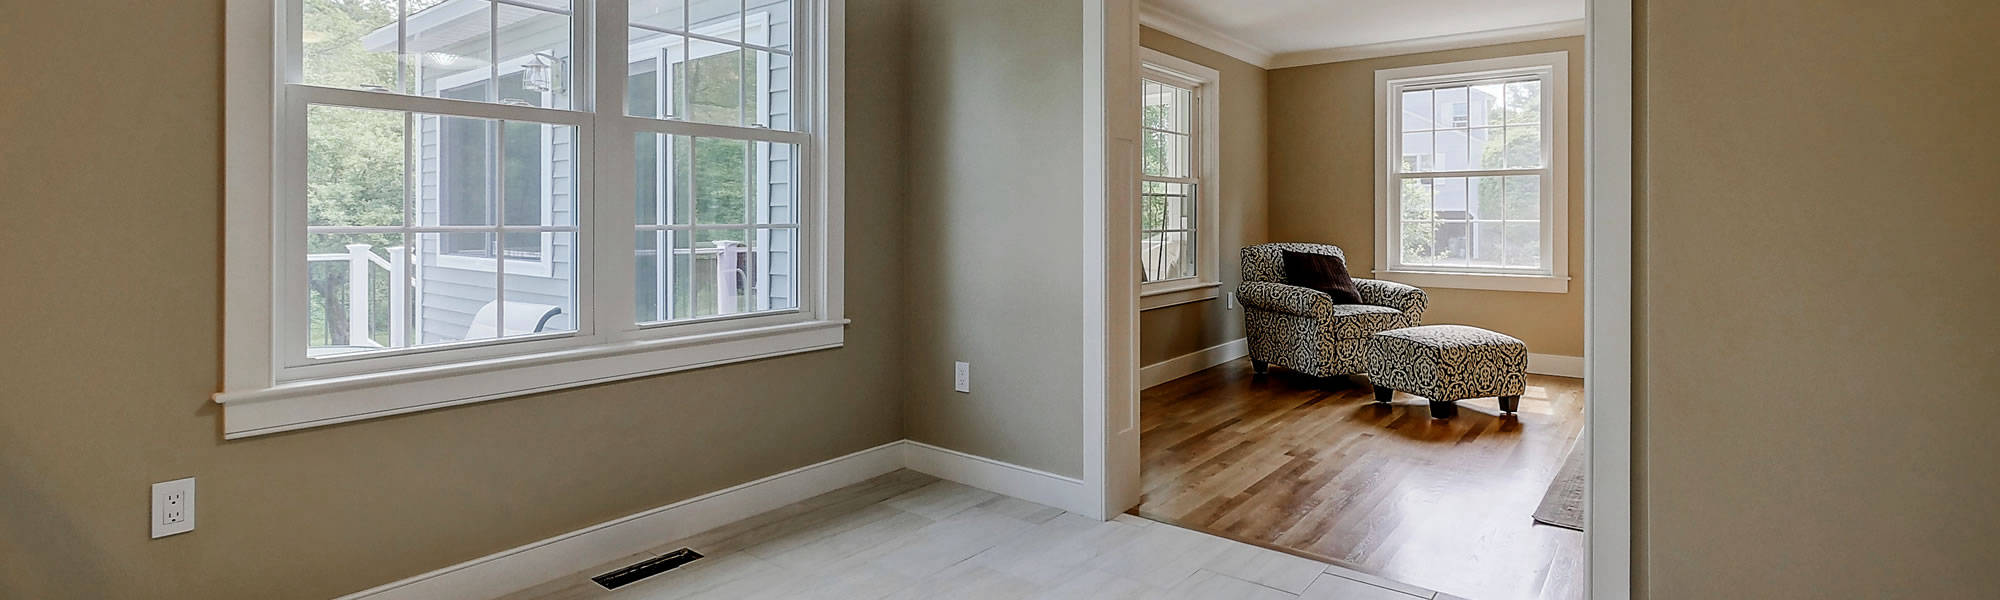 Landry Wood Flooring - Handling all your hardwood floor installations, sanding, refinishing and repairs. call 603-320-2171